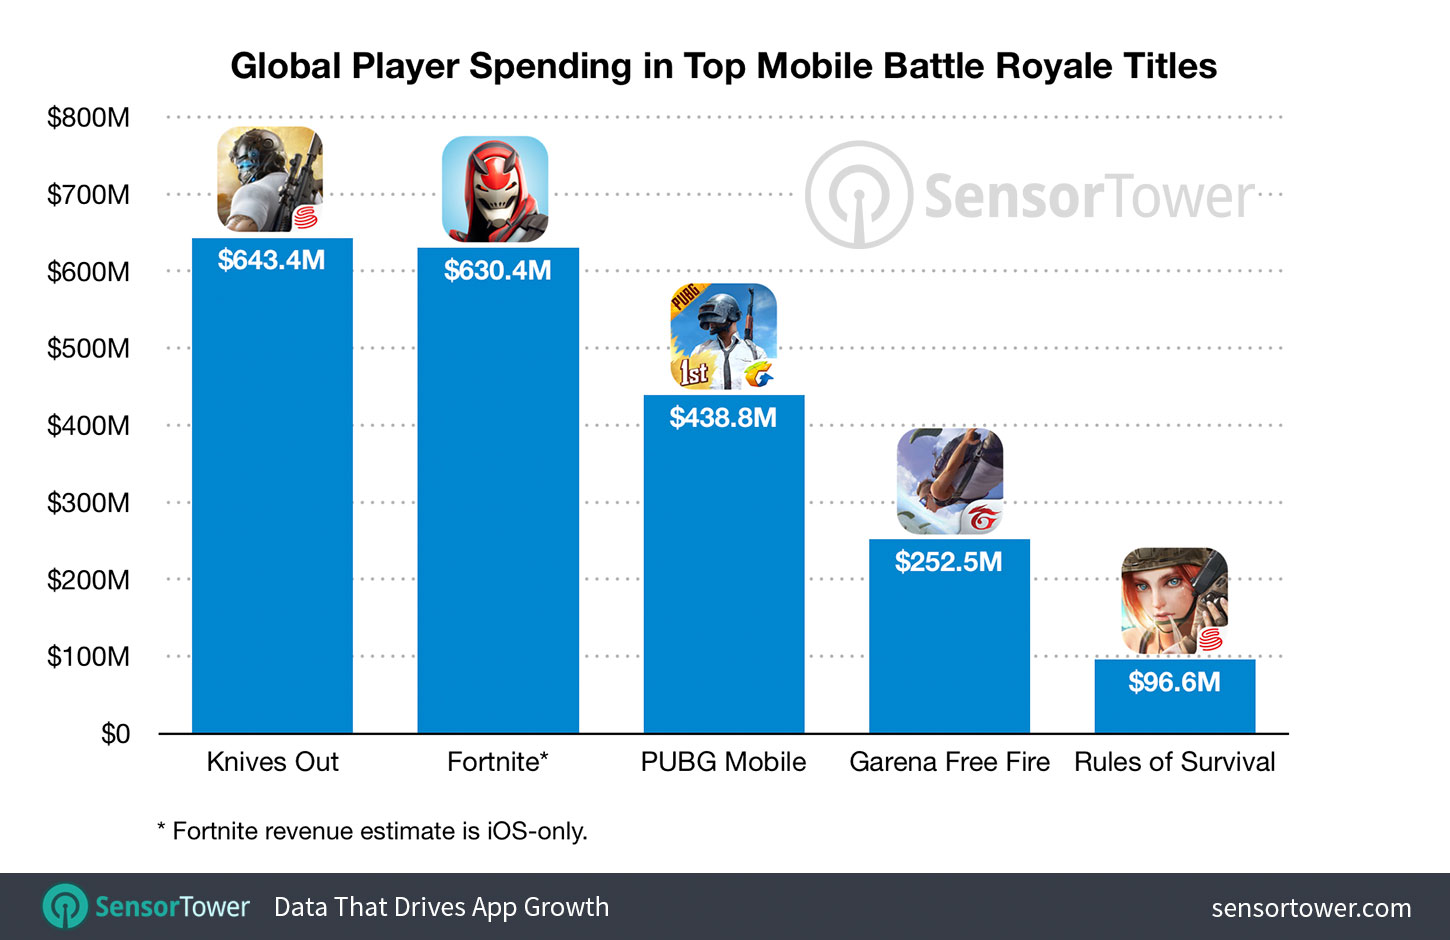 Player Spending in Top Mobile Battle Royale Titles Crosses